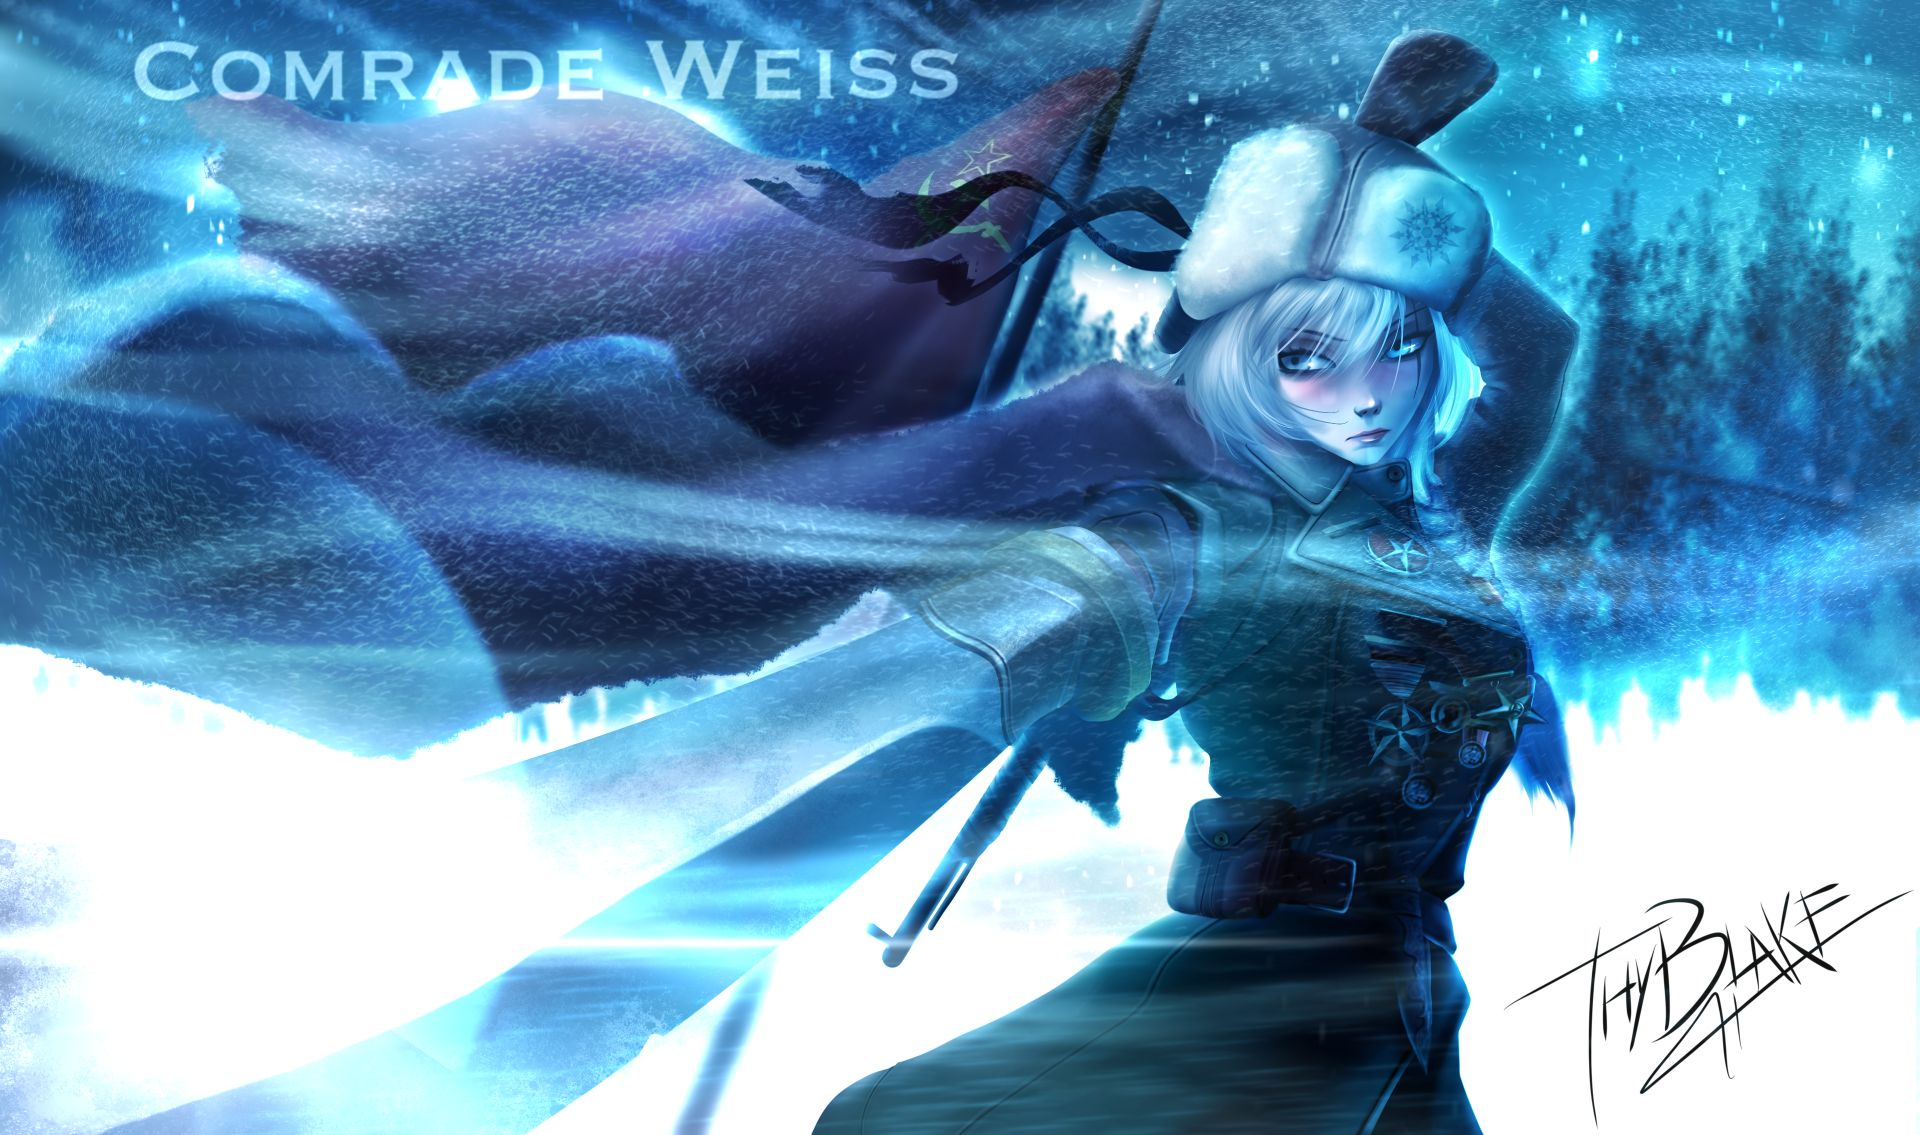 rwby__ww2_nations__russia___weiss_by_thyblake_dcc4boo.jpg